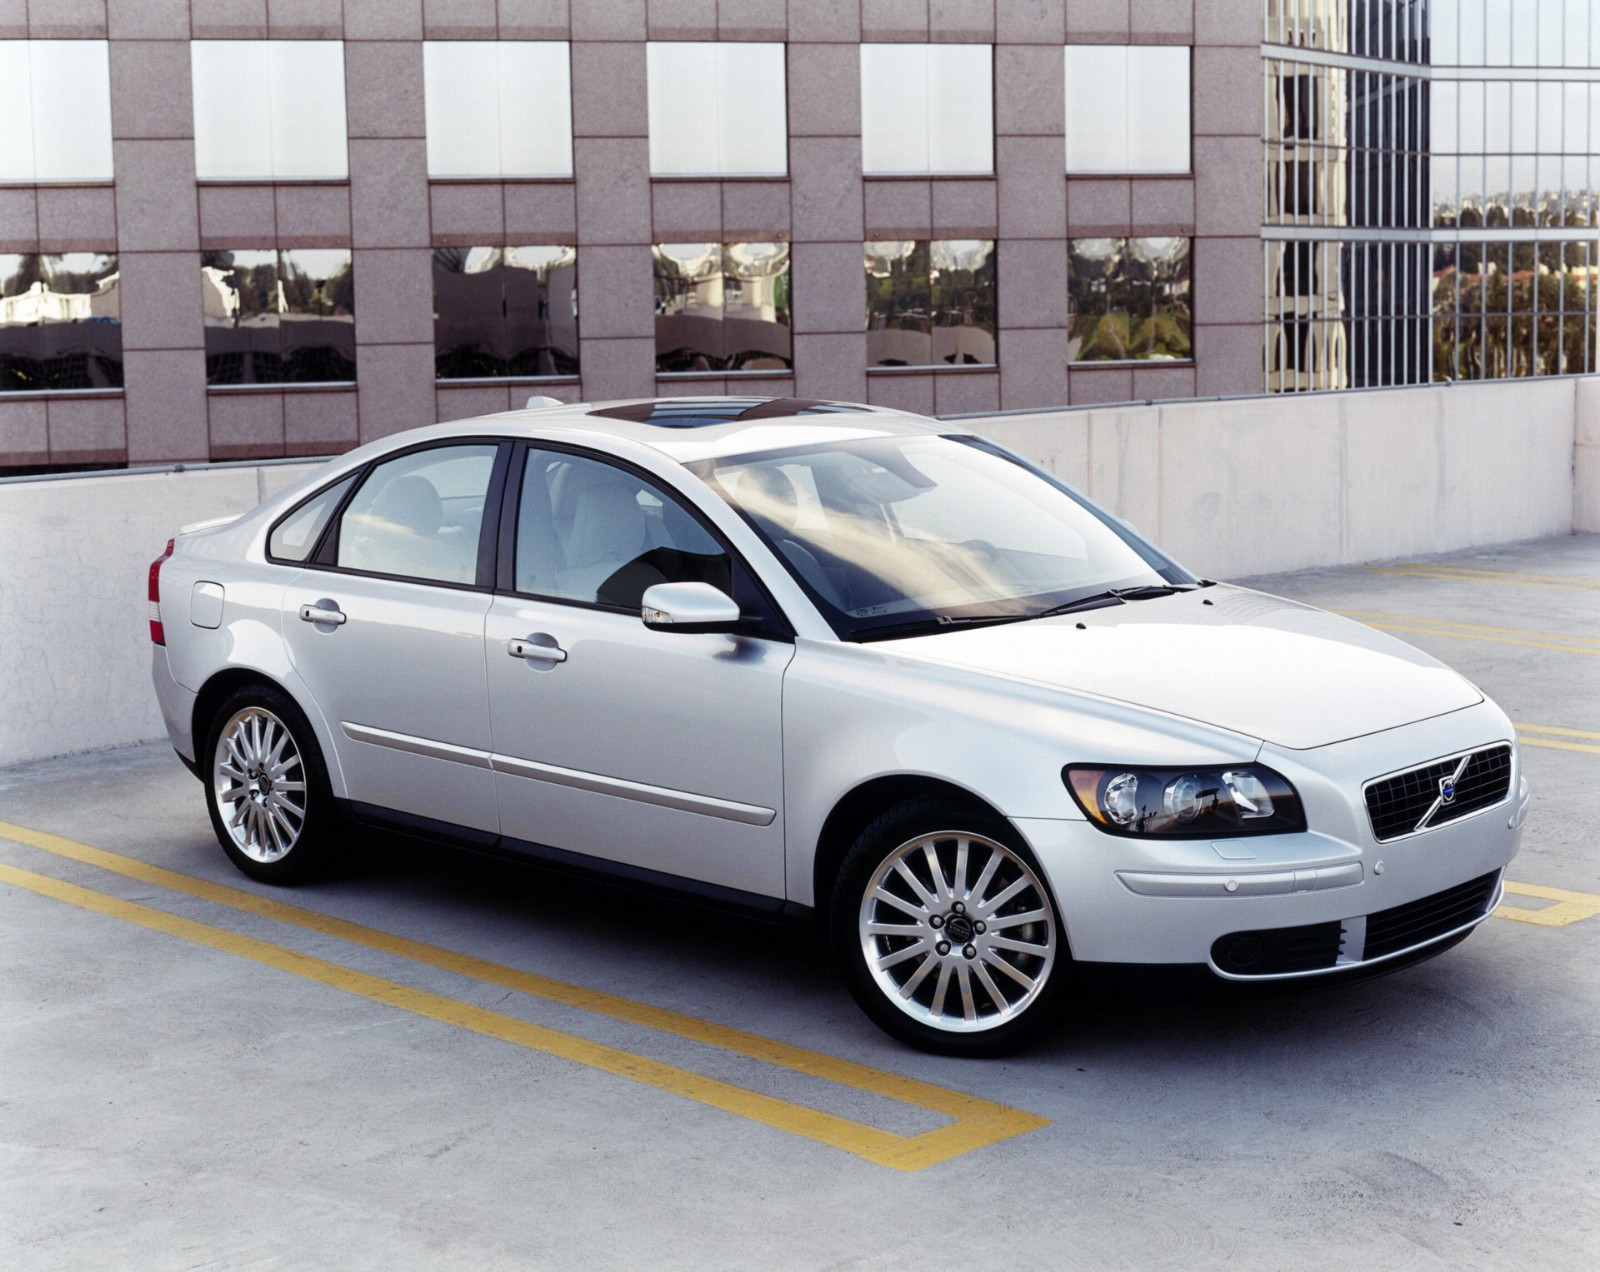 2007 Volvo S40 Image Https Www Conceptcarz Com Images